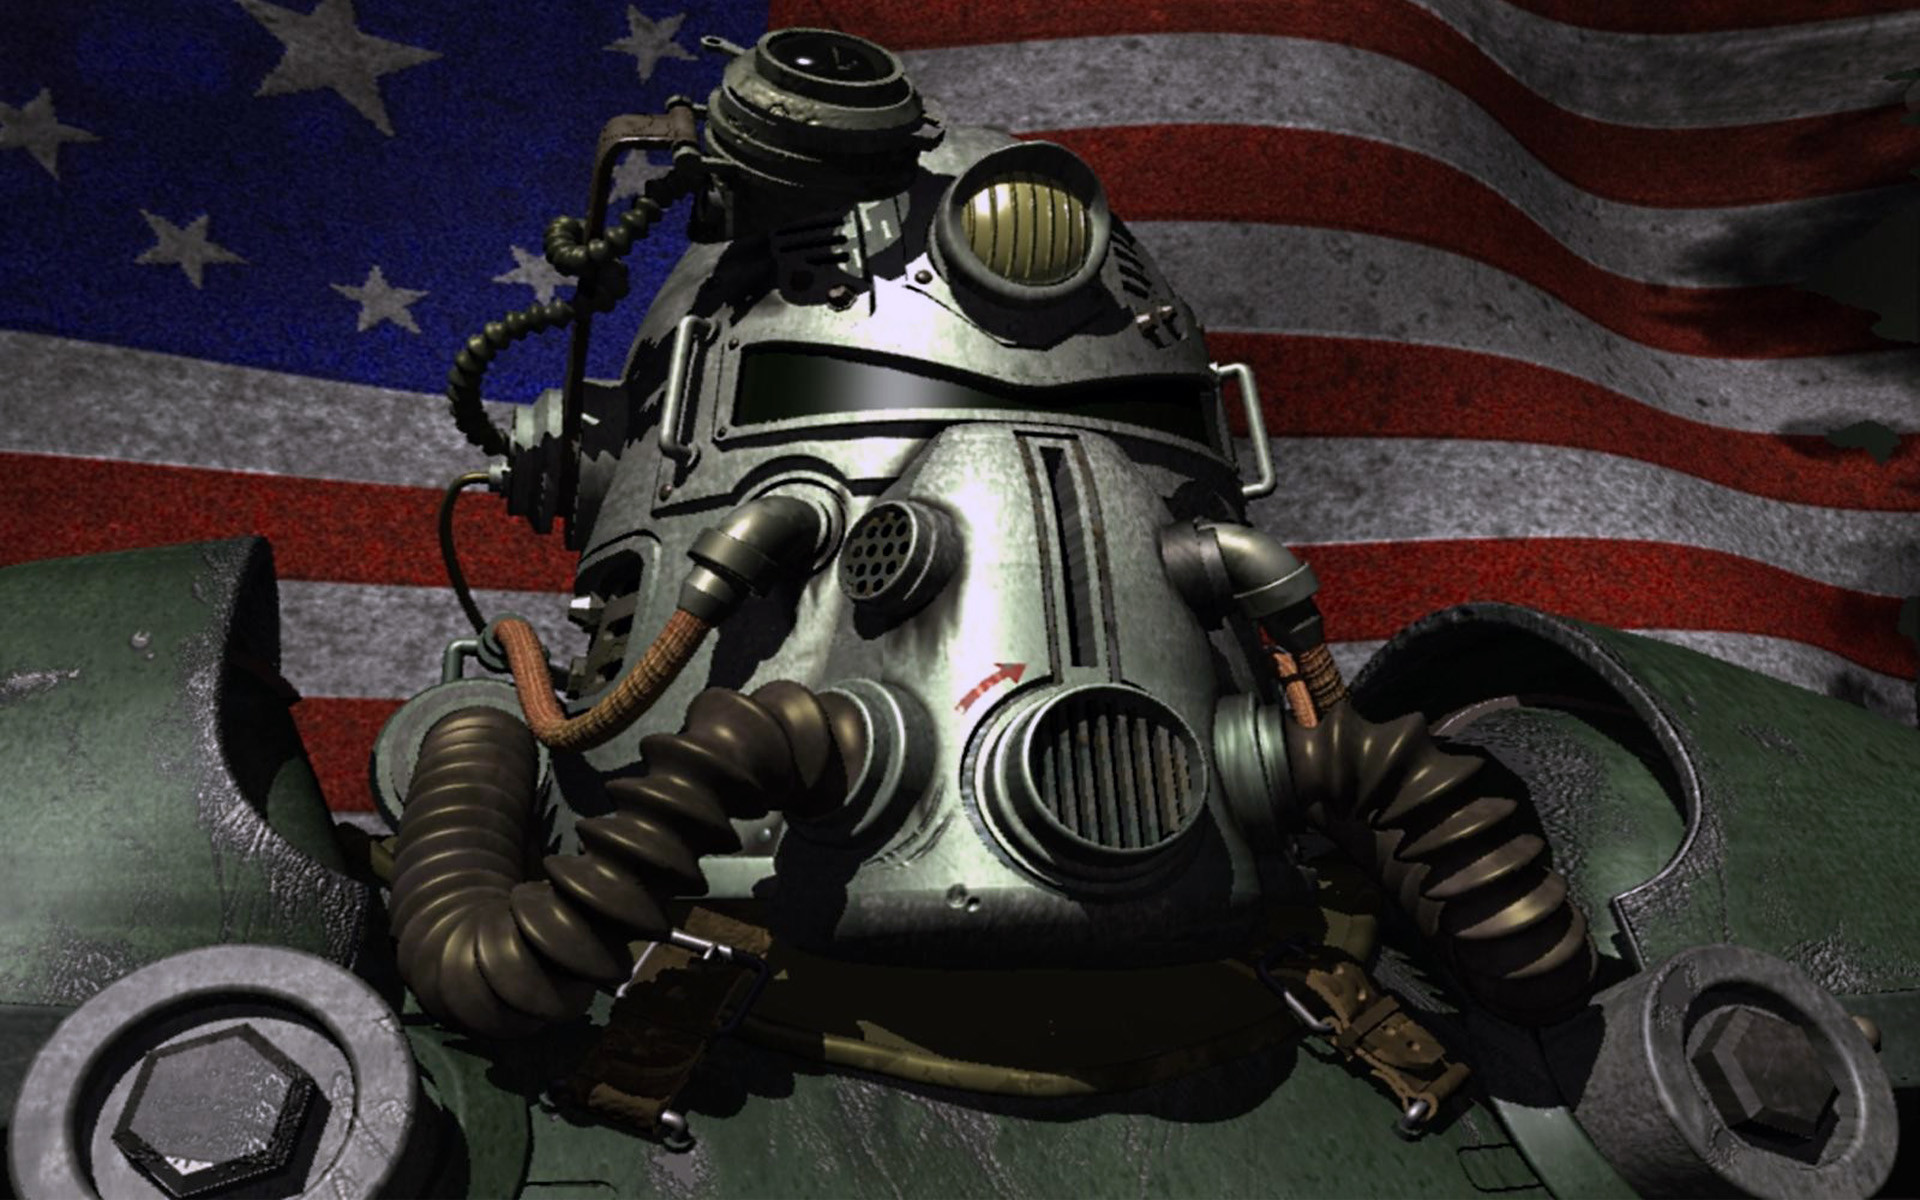 Fallout New Vegas Old World Blues wallpaper Game wallpapers